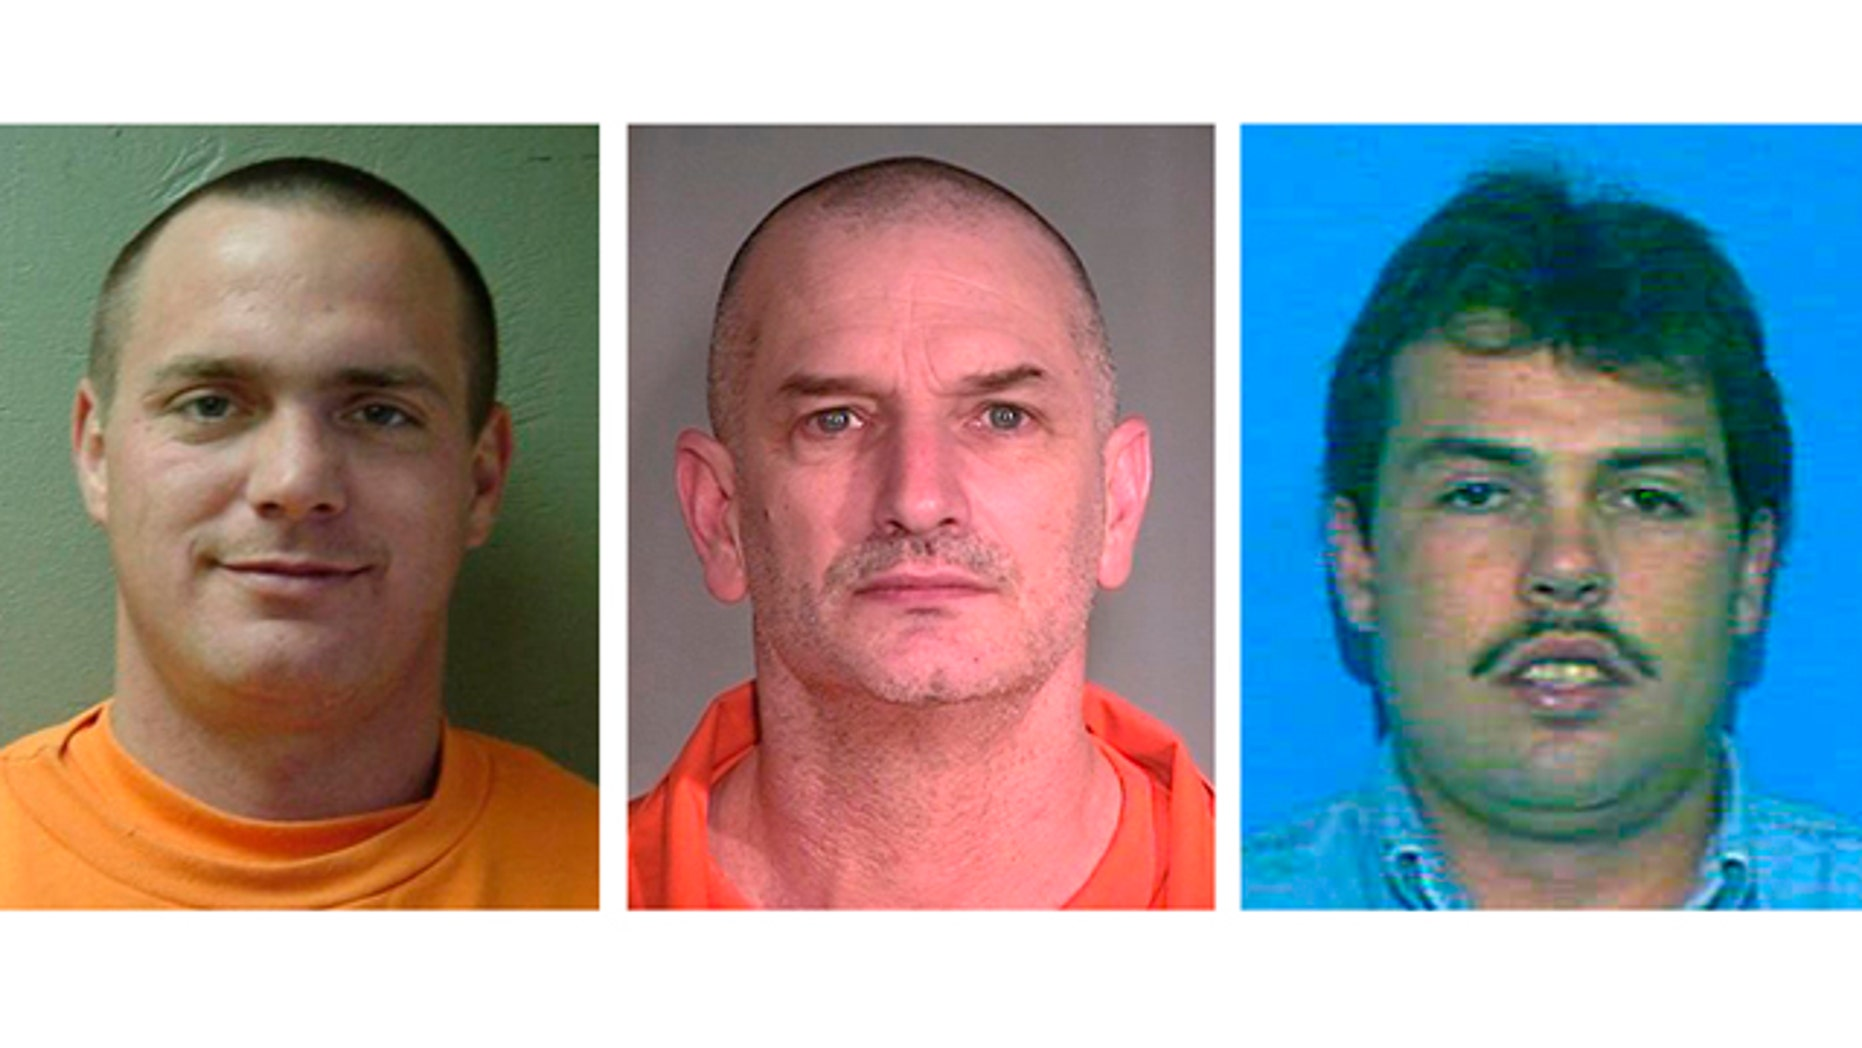 In this combination of undated photos provided by the Mohave County Sheriff's Office, Tracy Province, left, John McClusky, center, Daniel Renwick are shown. The three inmates, all convicted of murder, escaped from a northwest Arizona prison on Friday, July 30, 2010. The men are considered armed and dangerous. (AP Photo/Mohave County Sheriff's Office)